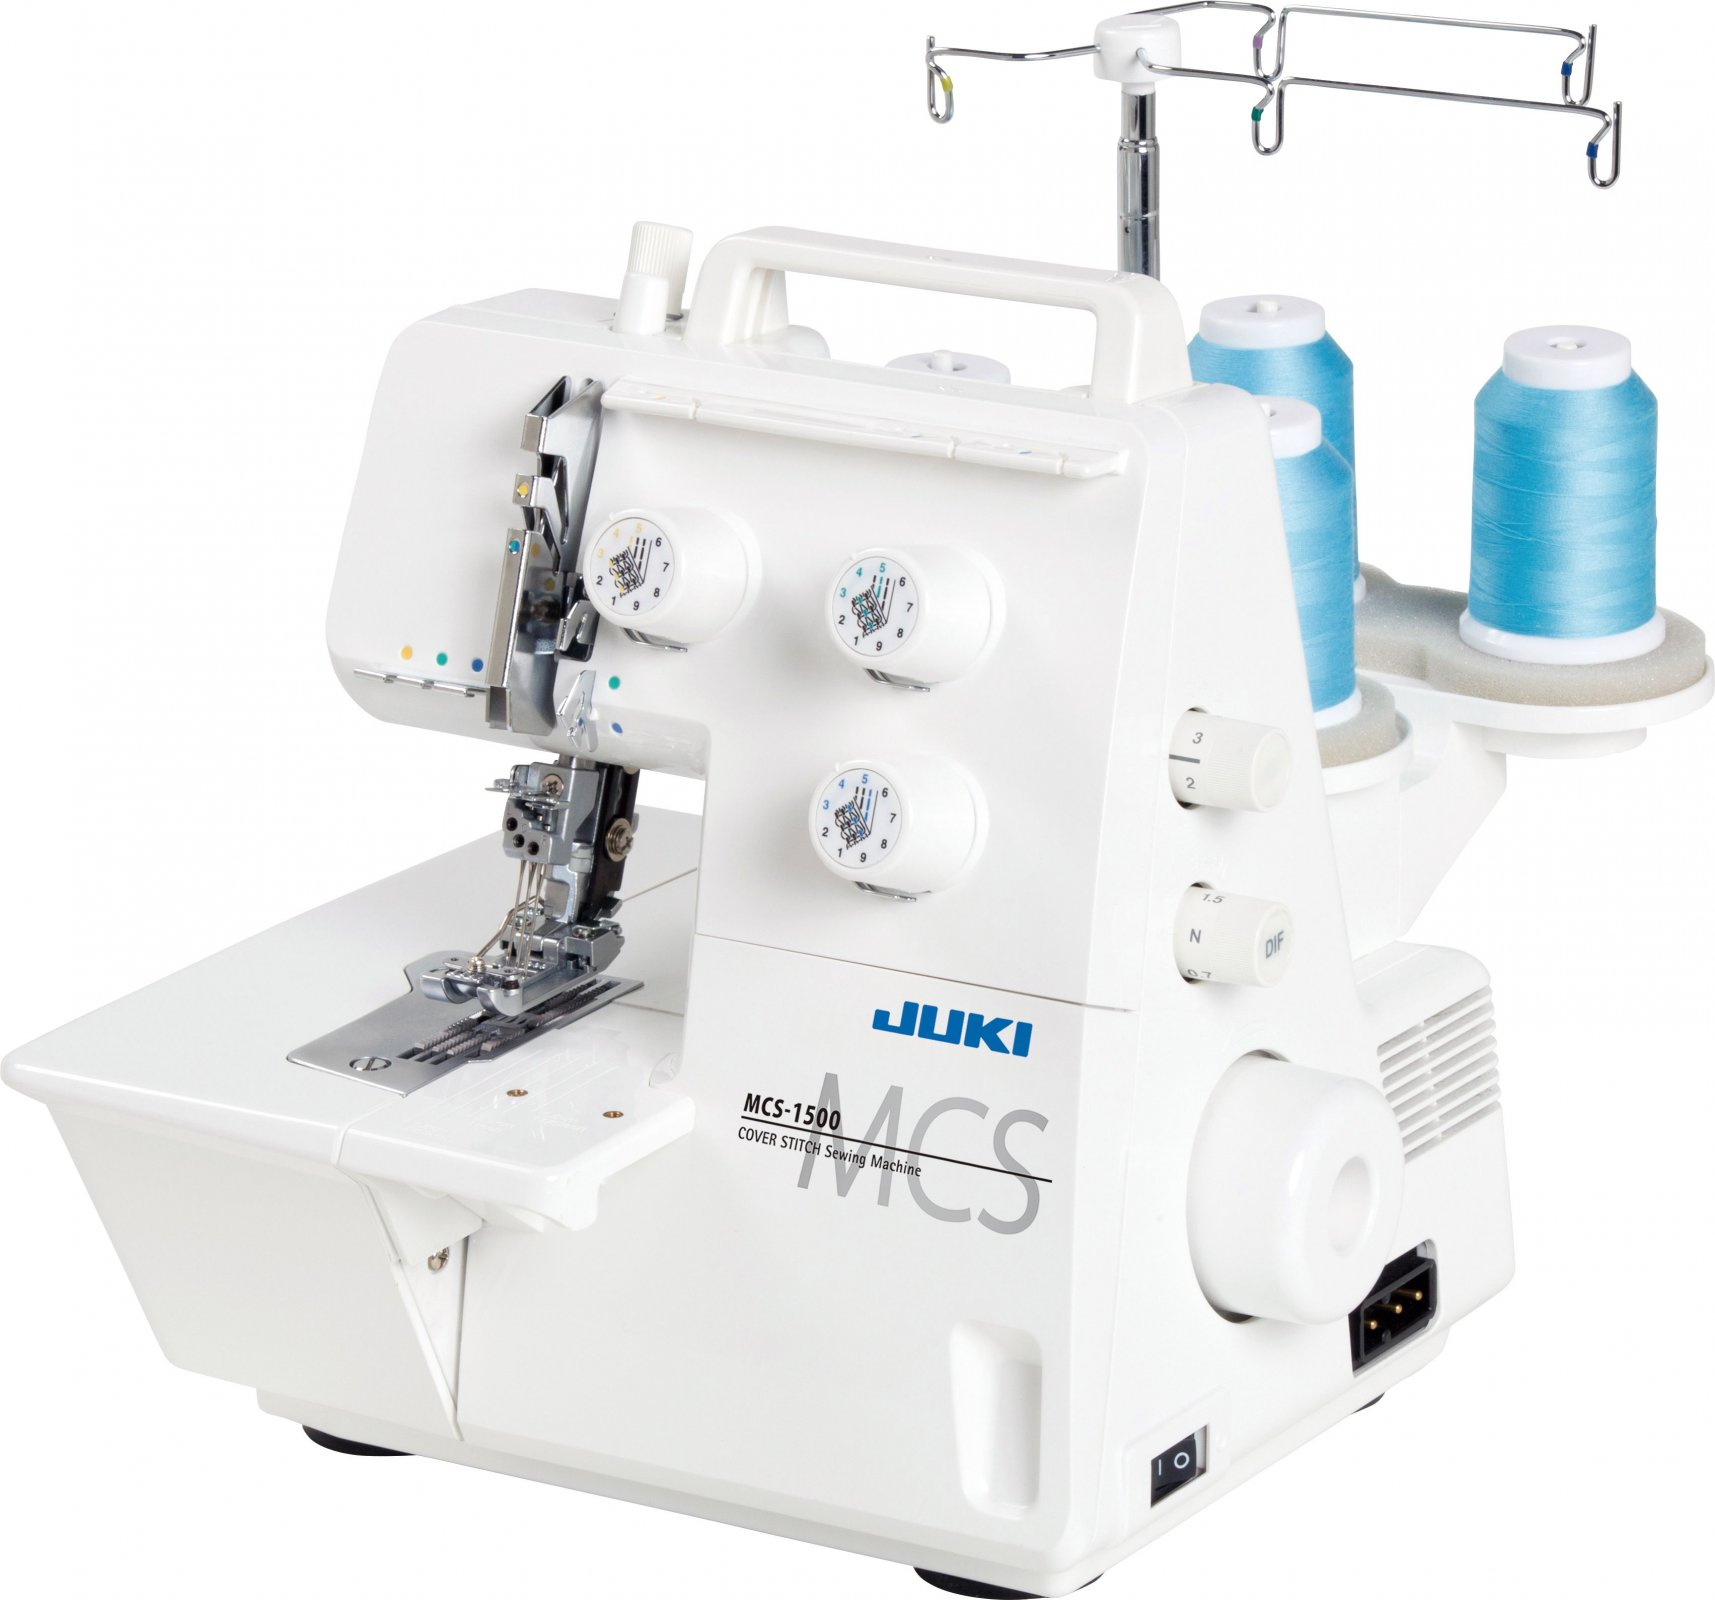 Juki Serger MCS1500 Coverstitch